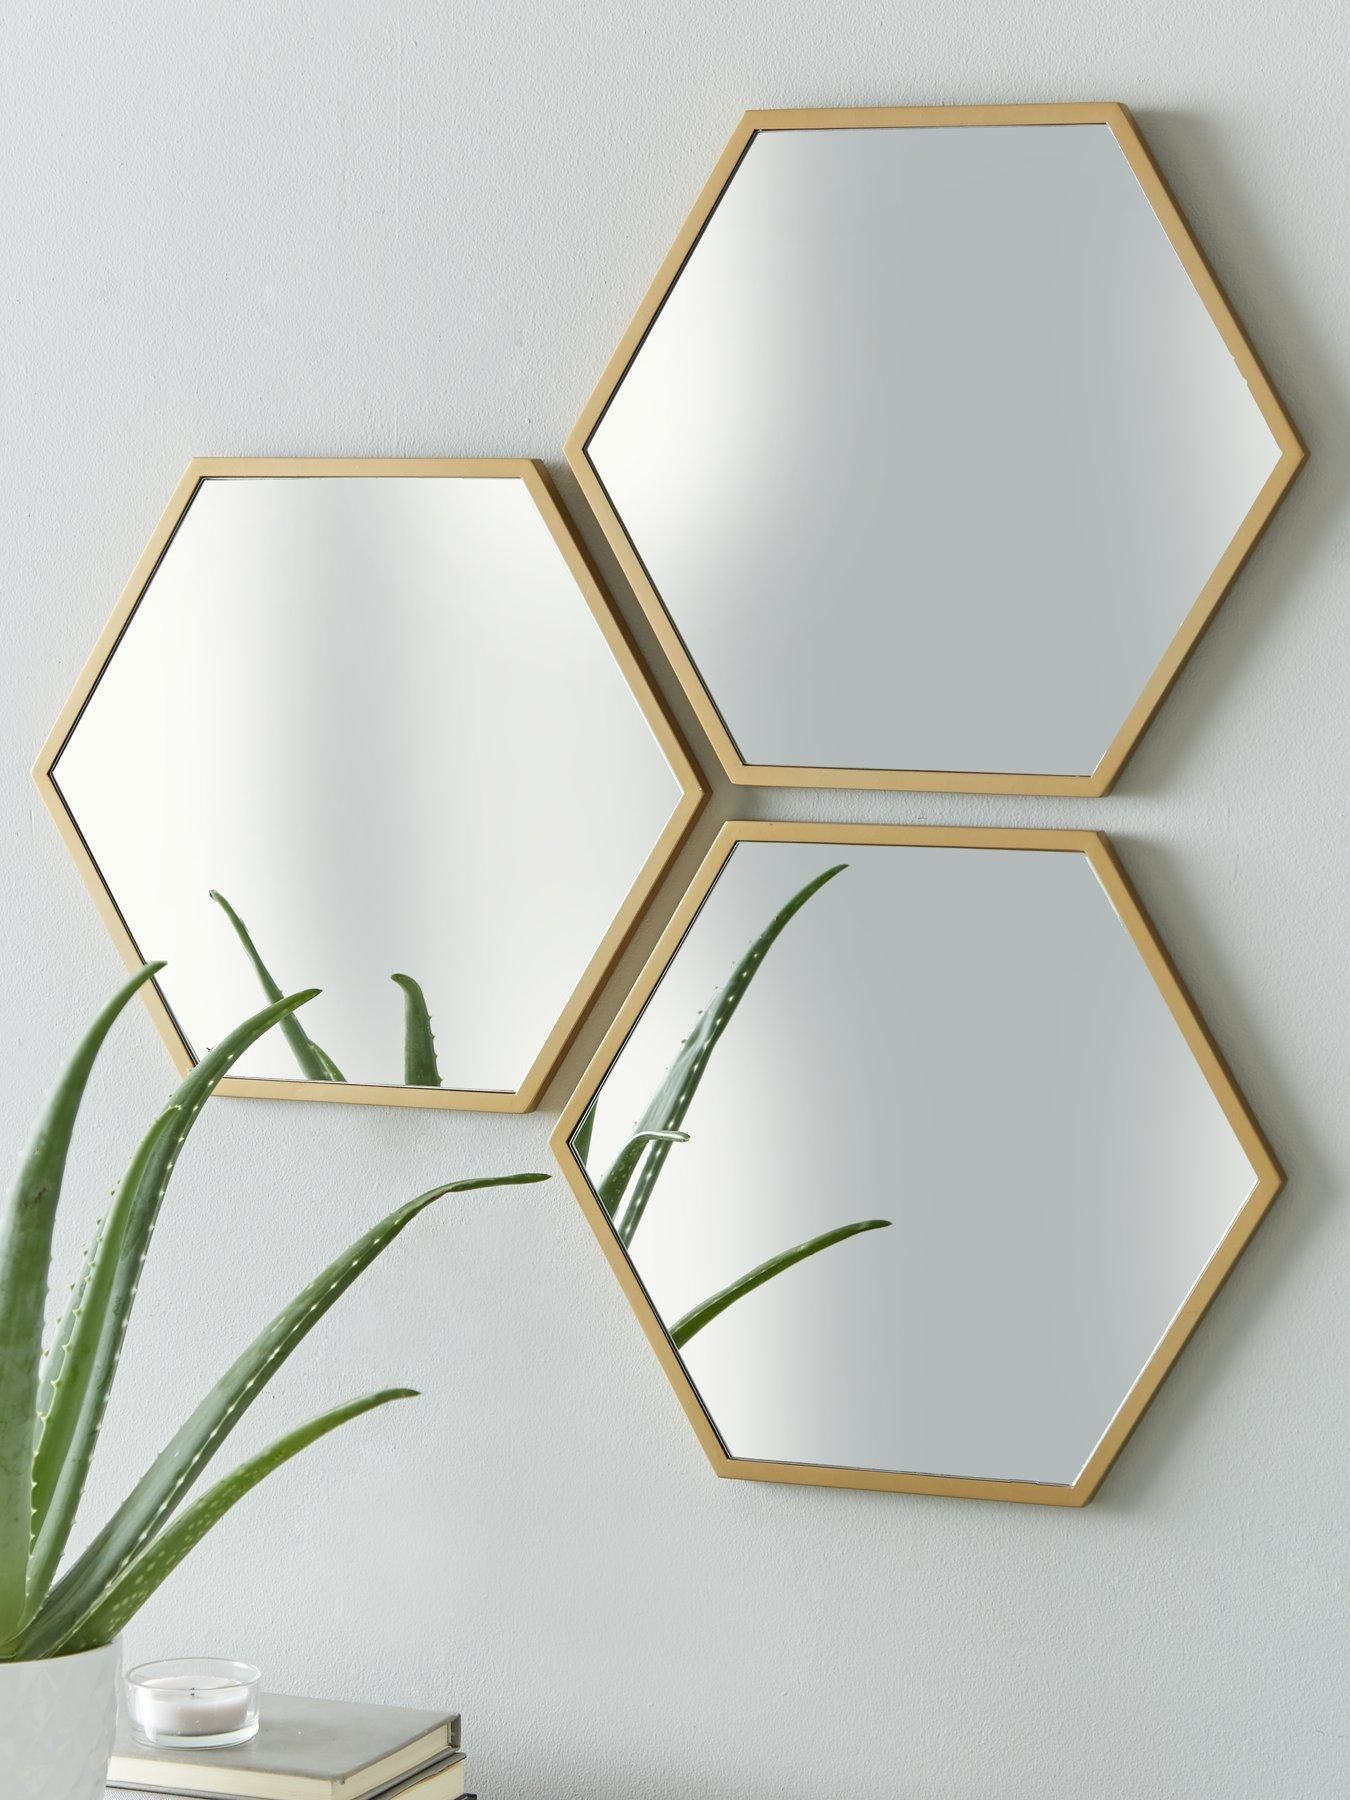 Set of 3 Gold Hexagon Wall Mirrors in 2020 | Gold wall ...